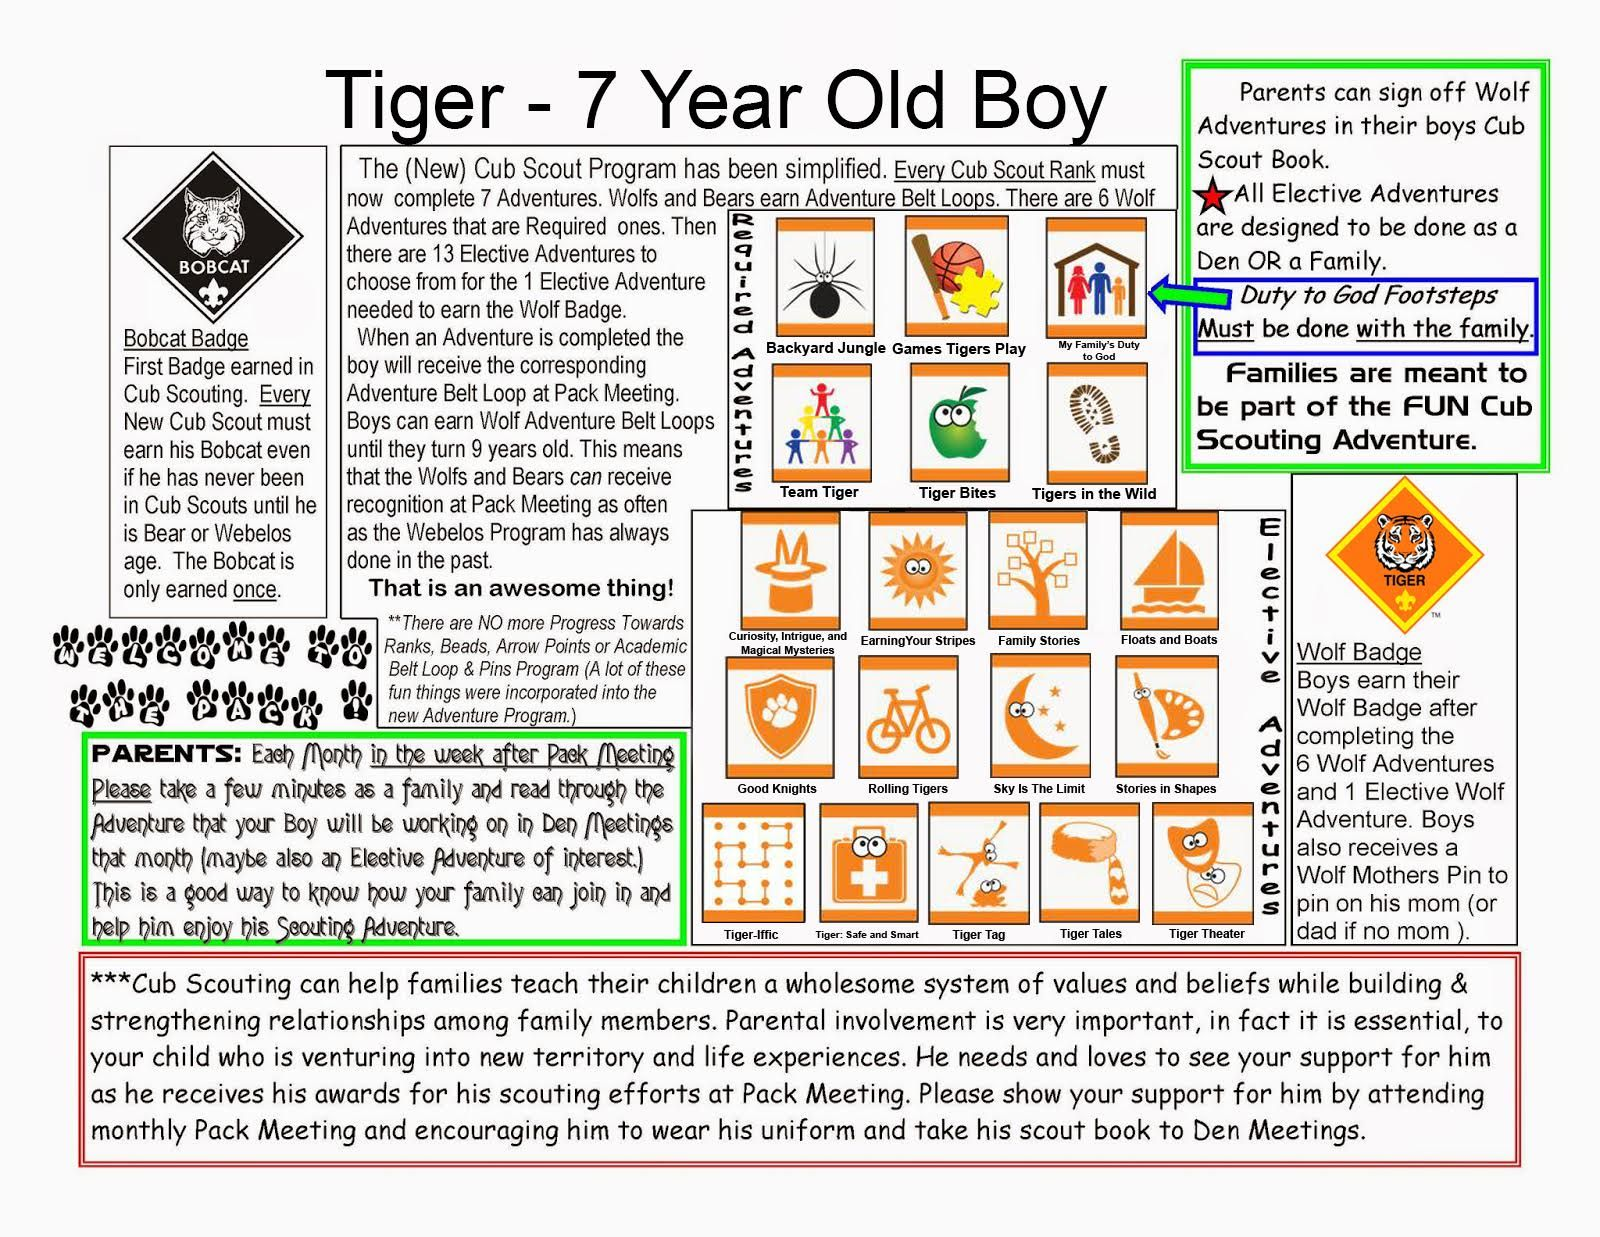 Worksheets Cub Scout Belt Loop Worksheets new tiger basics cub scouts pinterest tigers scout crafts